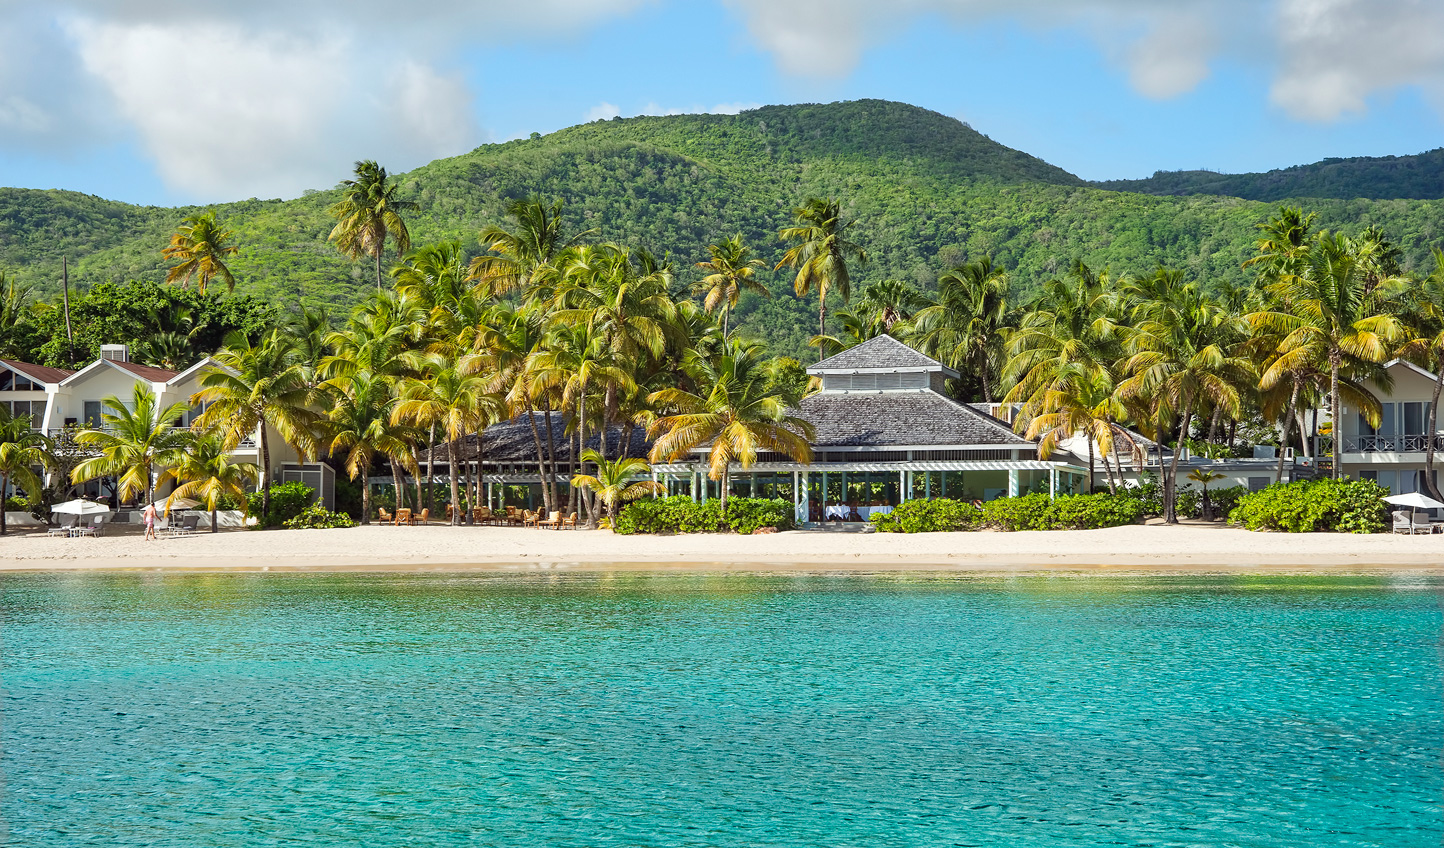 A glamourous getaway on Caribbean shores